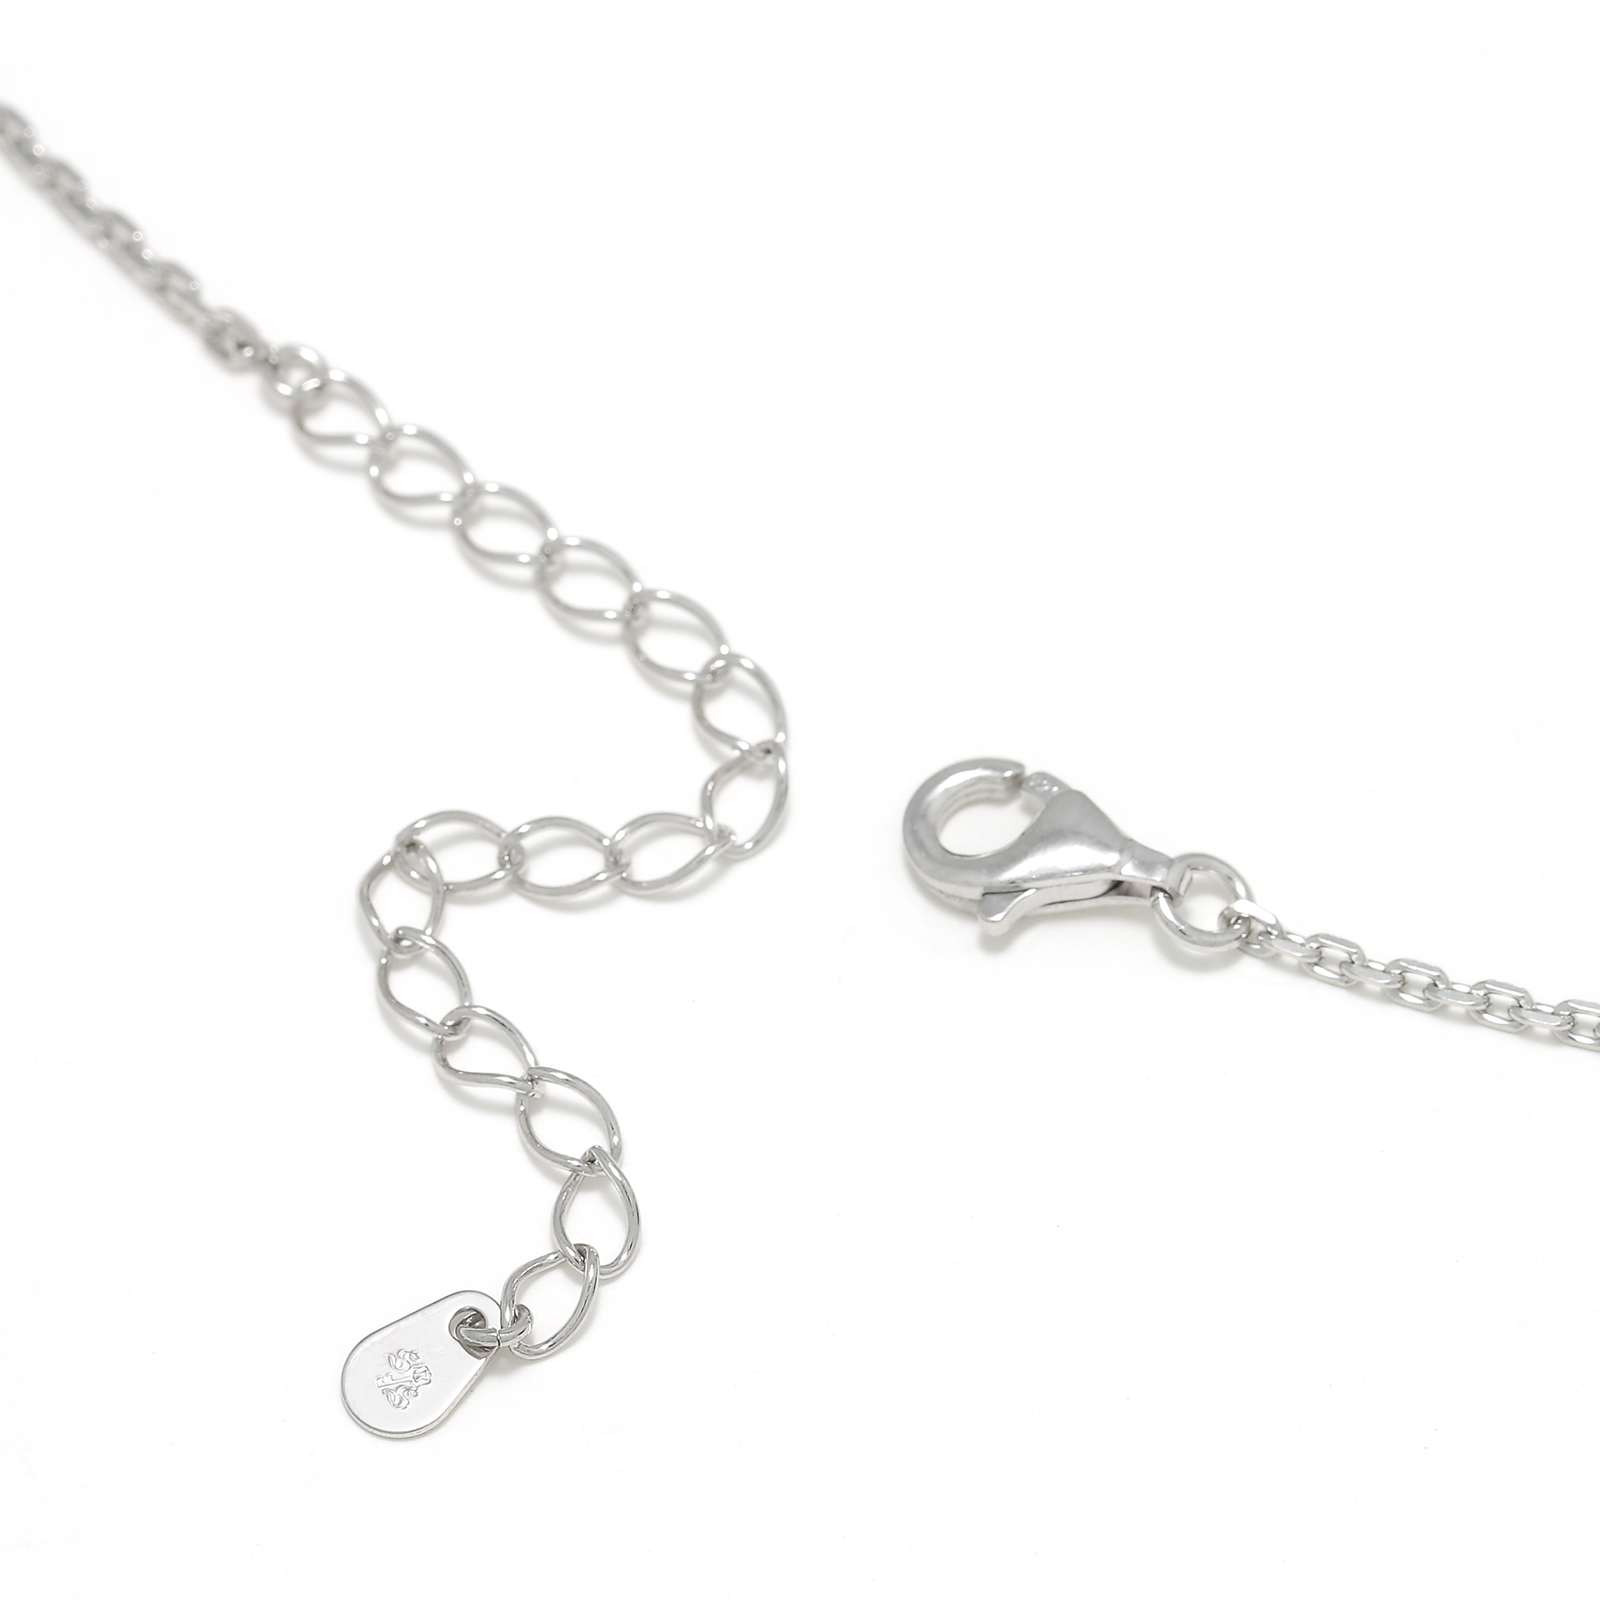 Small Charm Necklace - Horseshoe - Silver w/CZ